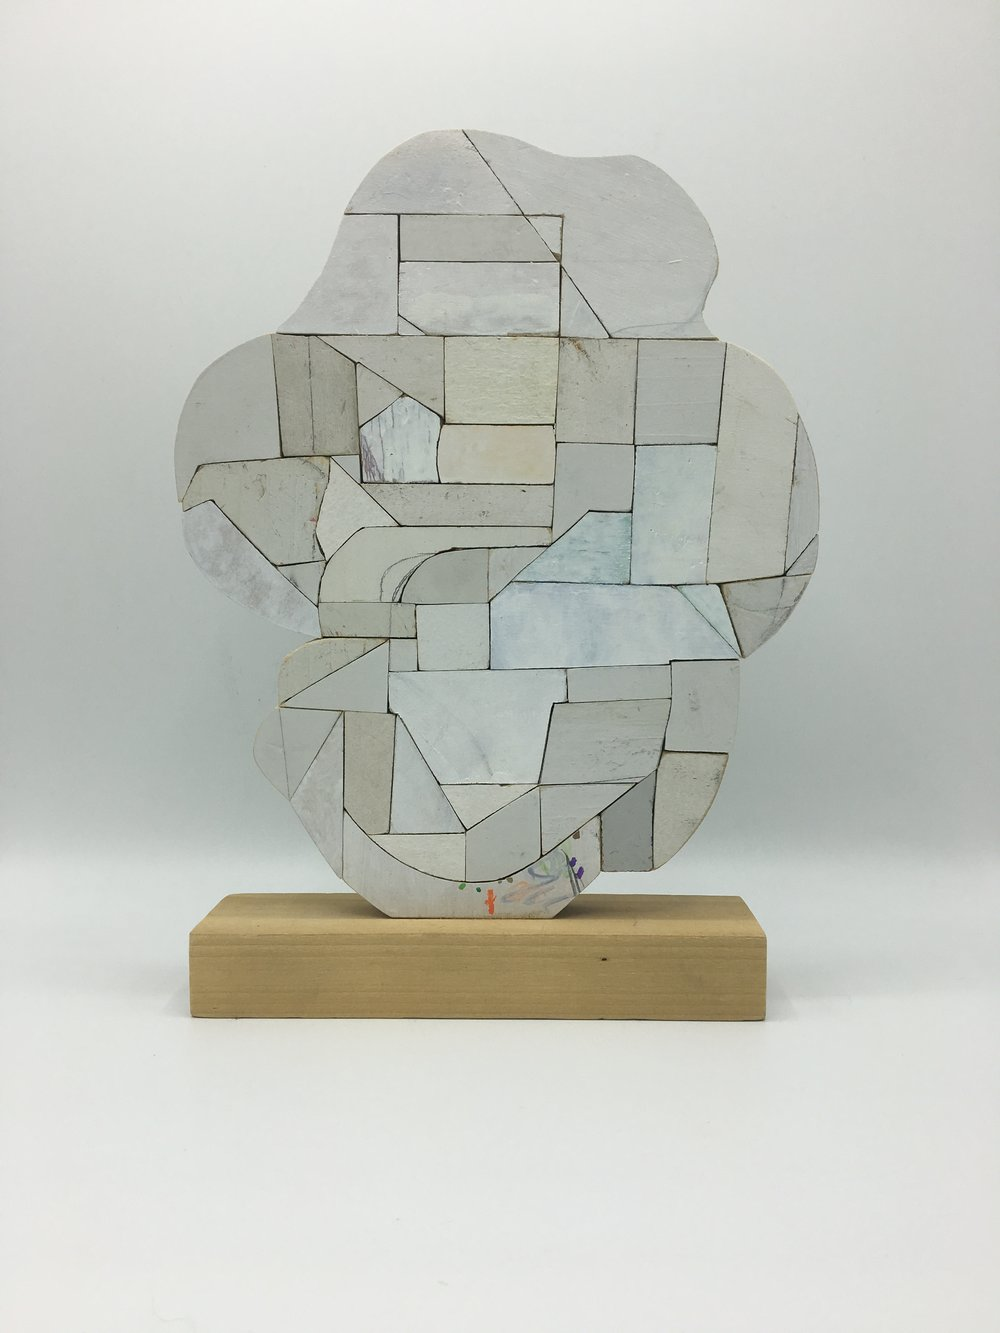 White One, 2017 [private collection Boston, MA] Wood, Paint, Glue 11 x 8 x 2 in.